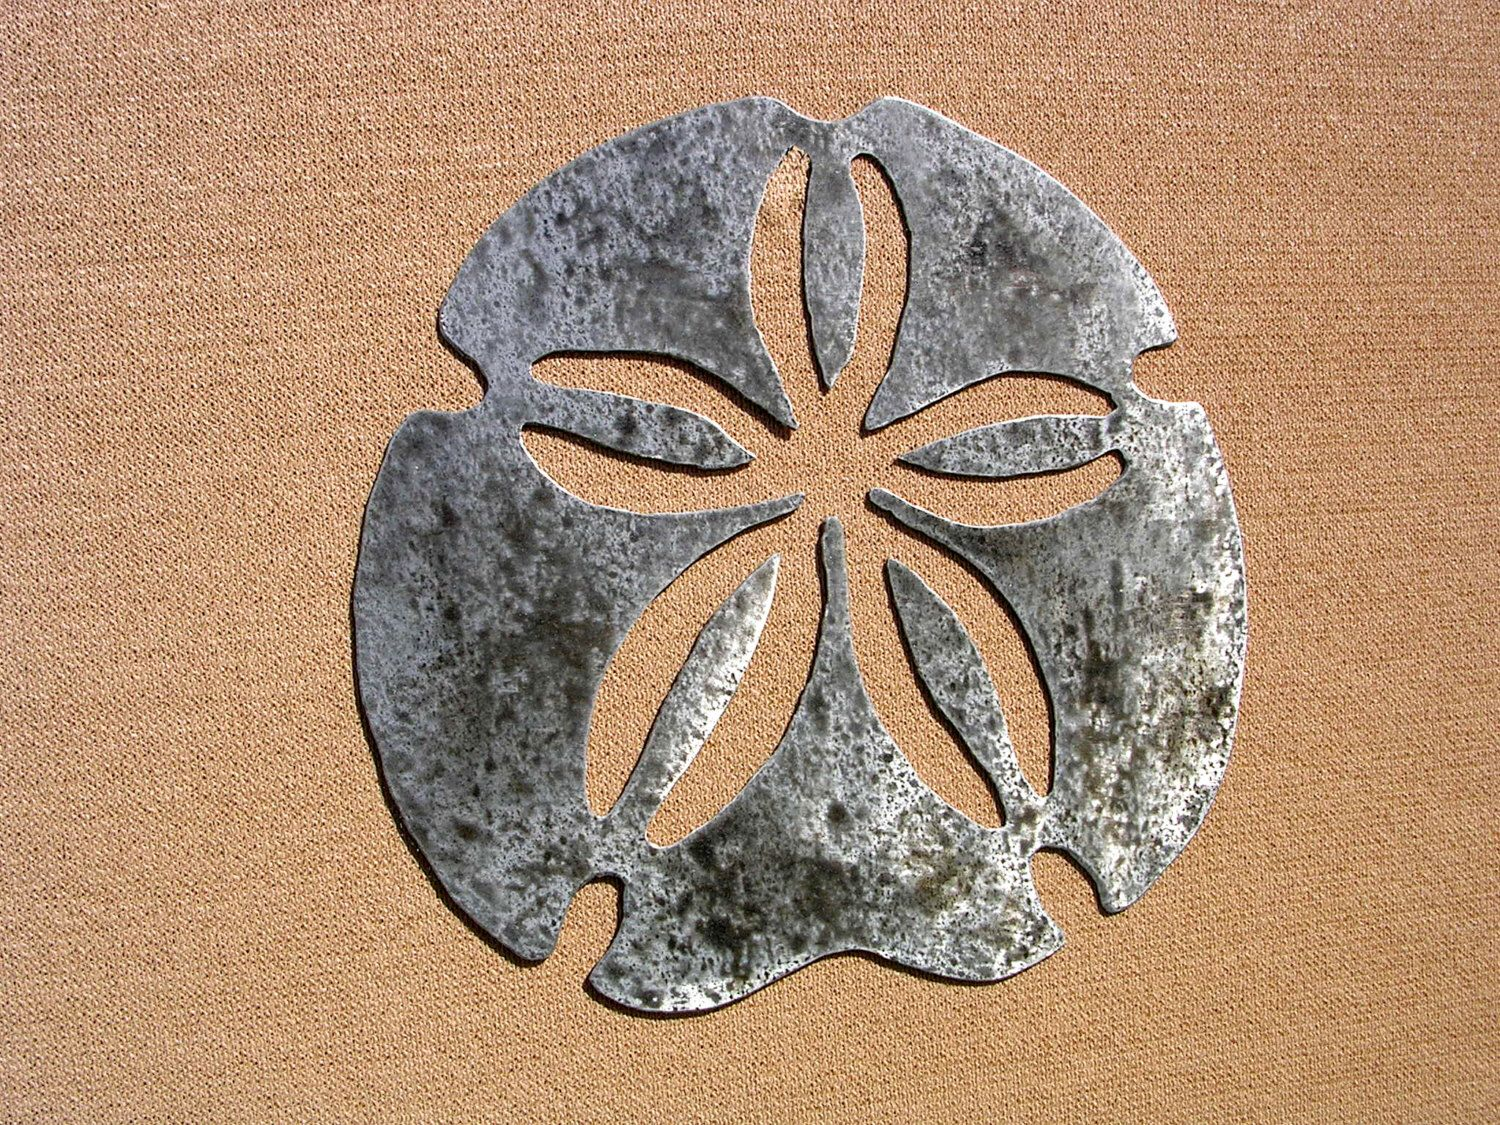 Sand Dollar Art Large Outdoor Metal Wall Art Sculpture Sanddollar Art Outdoor Metal Wall Art Sculpture 2 sizes by LemonBayMetalArt on Etsy ... & Sand Dollar Metal Art Sand Dollar Art Outdoor Metal Wall Art ...